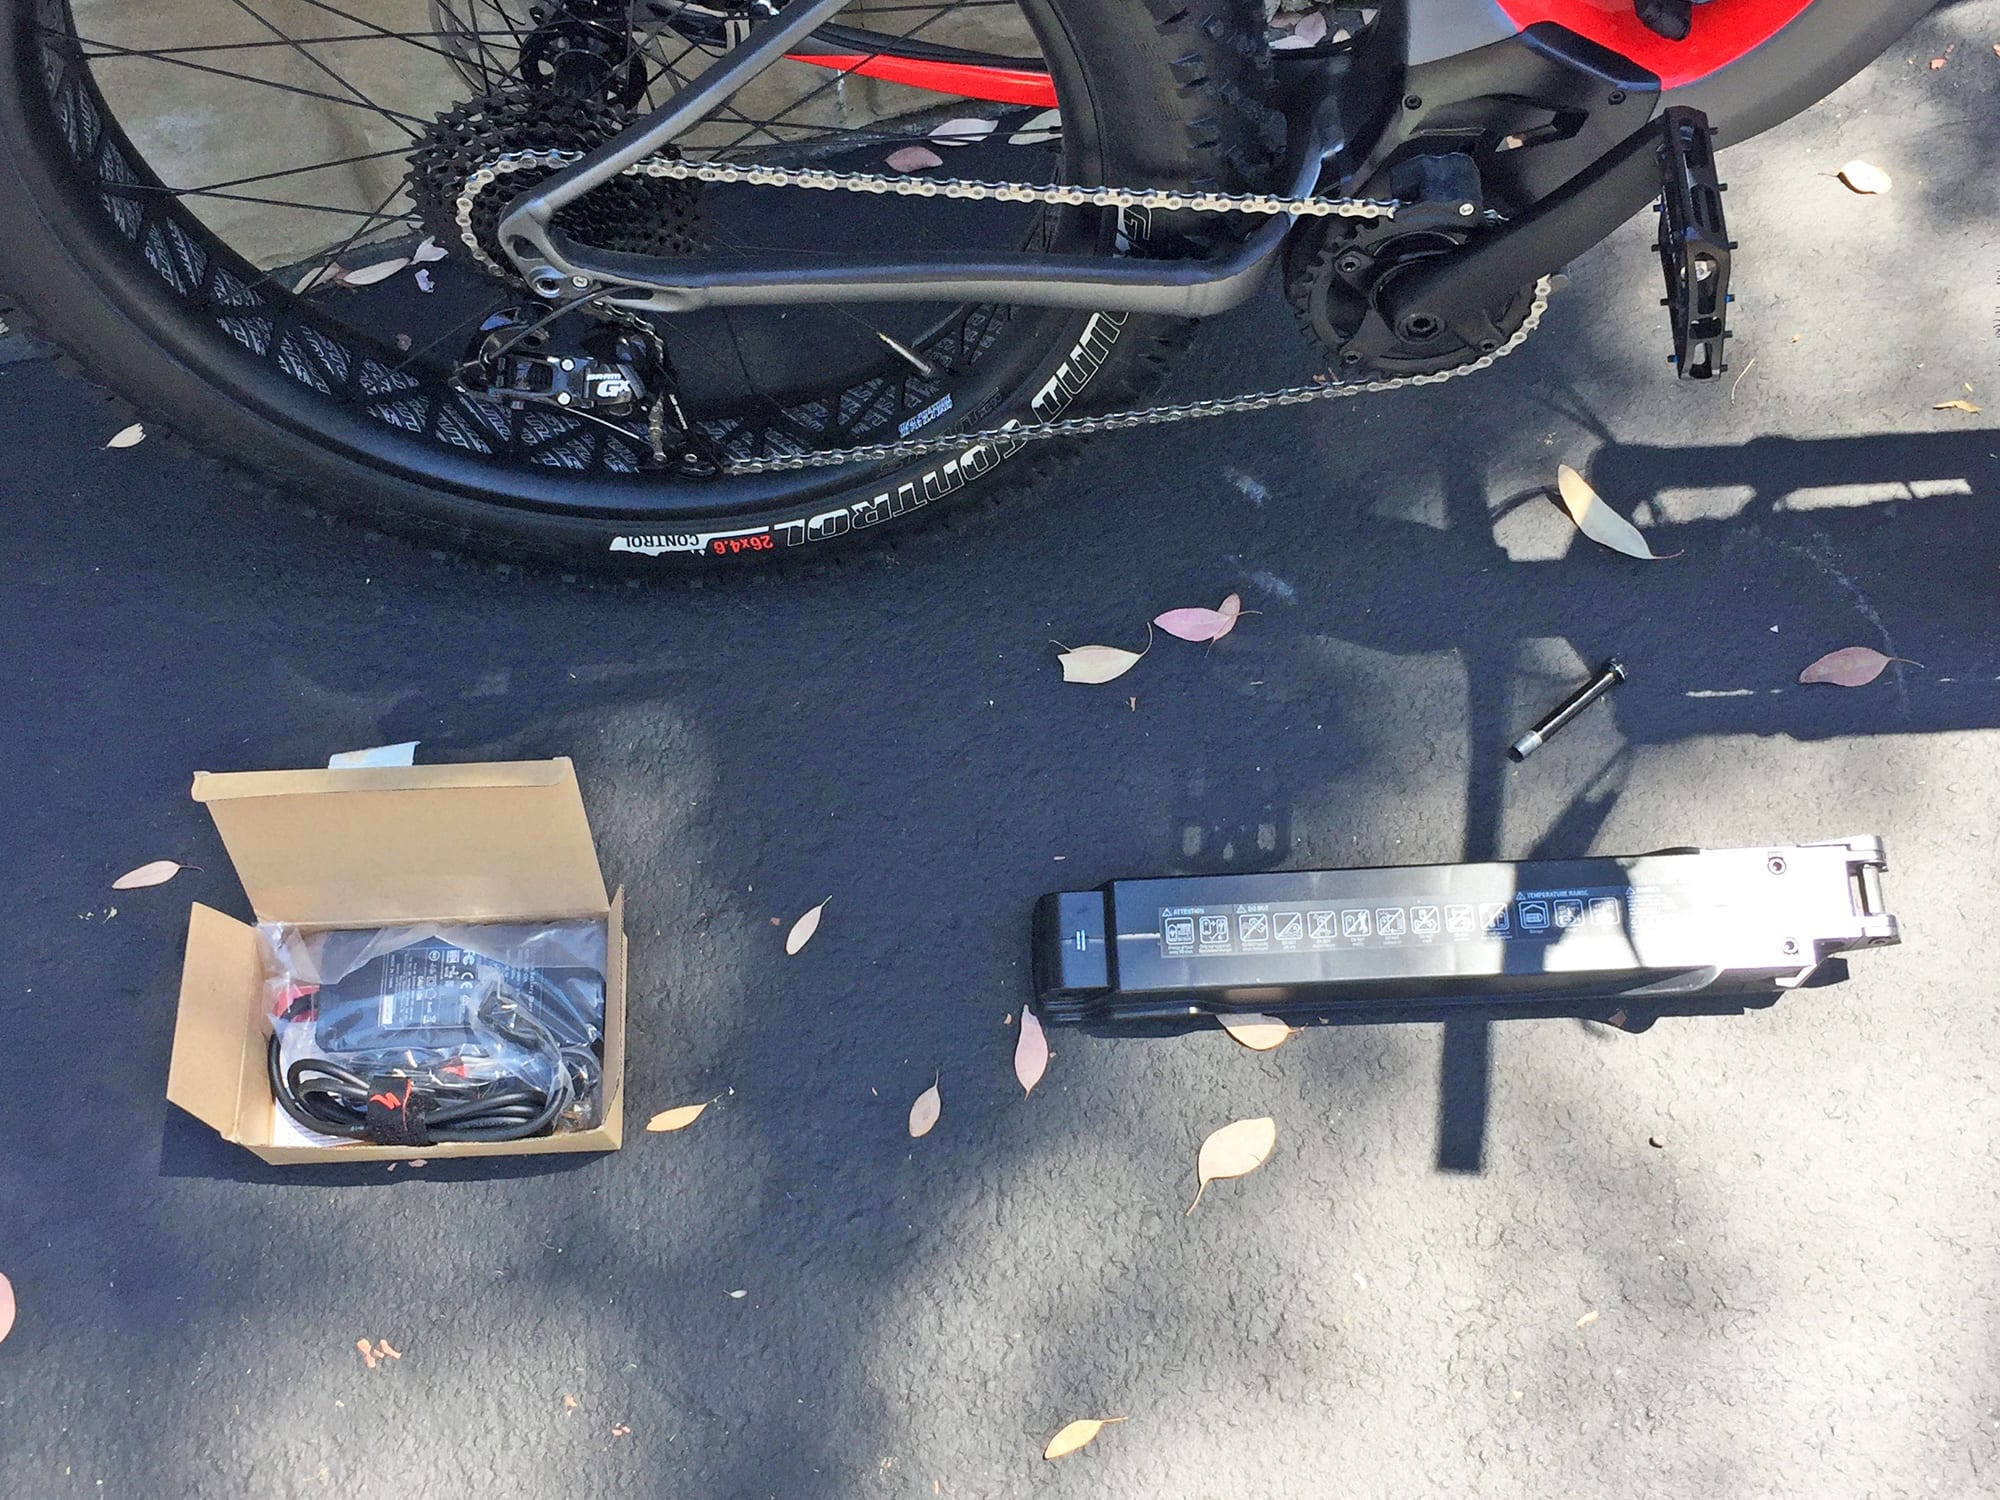 SPECIALIZED Narrow Under Rail Saddle Bag with New Tube and New Red EMT Tire Tool